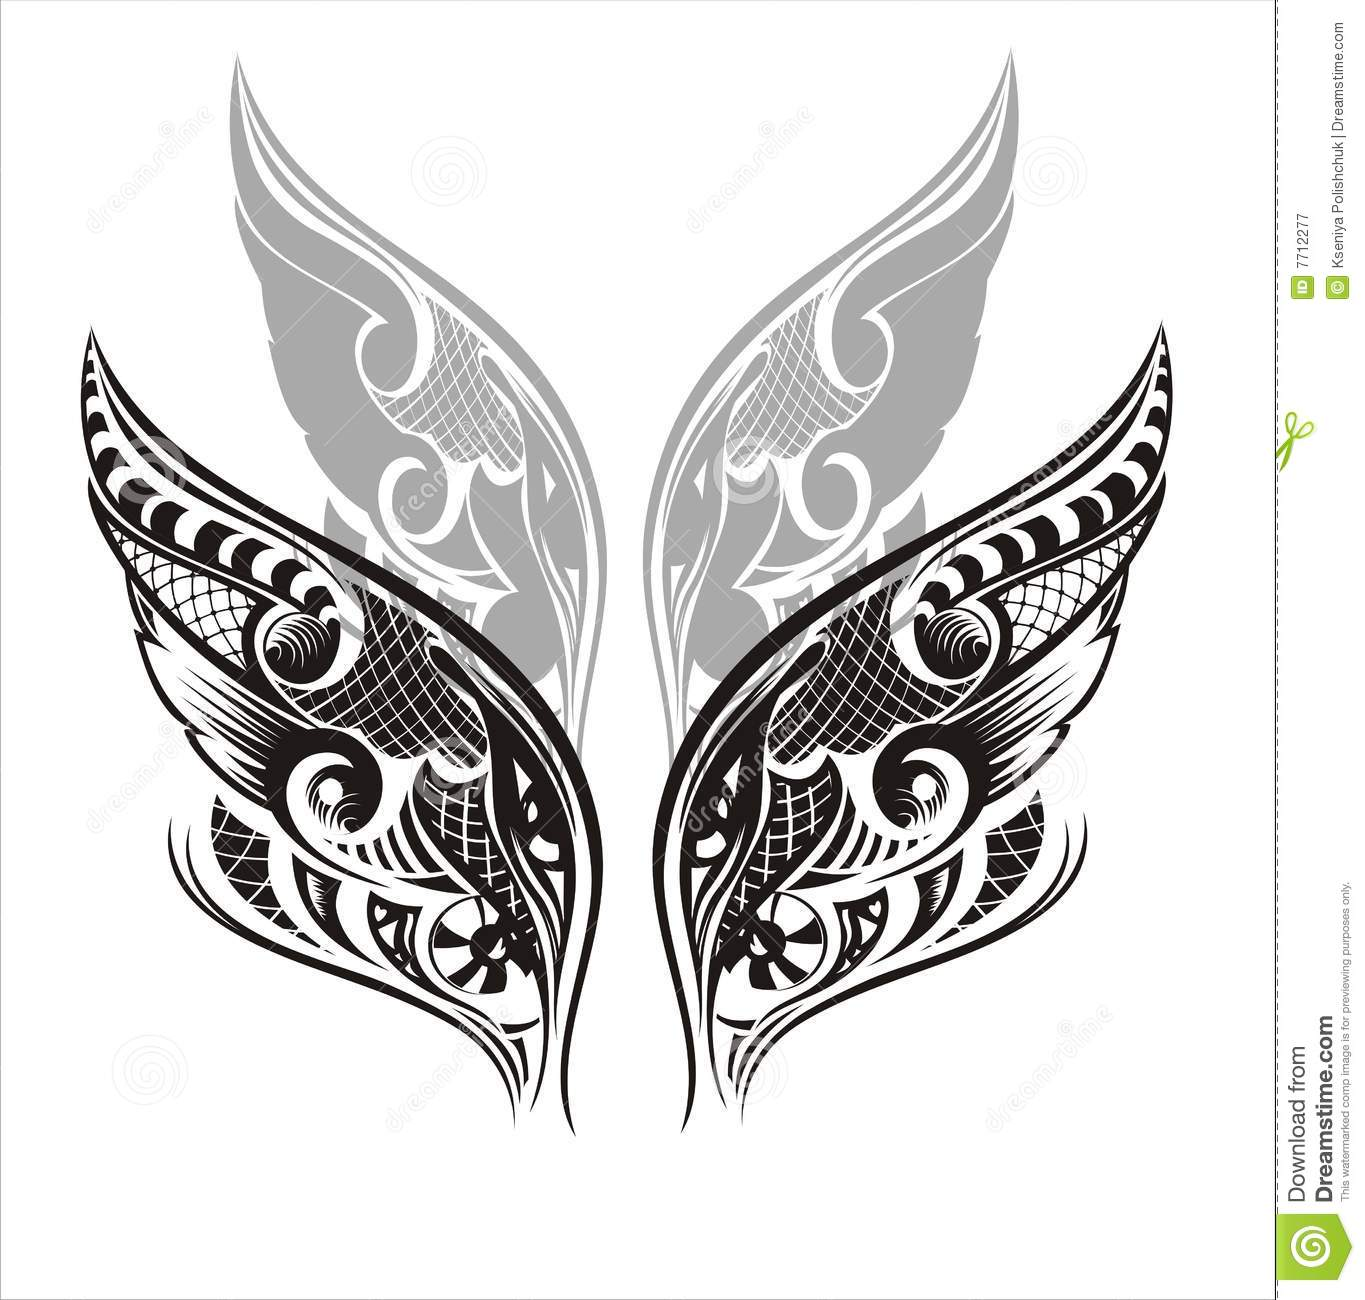 wings tattoo design royalty free stock photography image 7712277. Black Bedroom Furniture Sets. Home Design Ideas